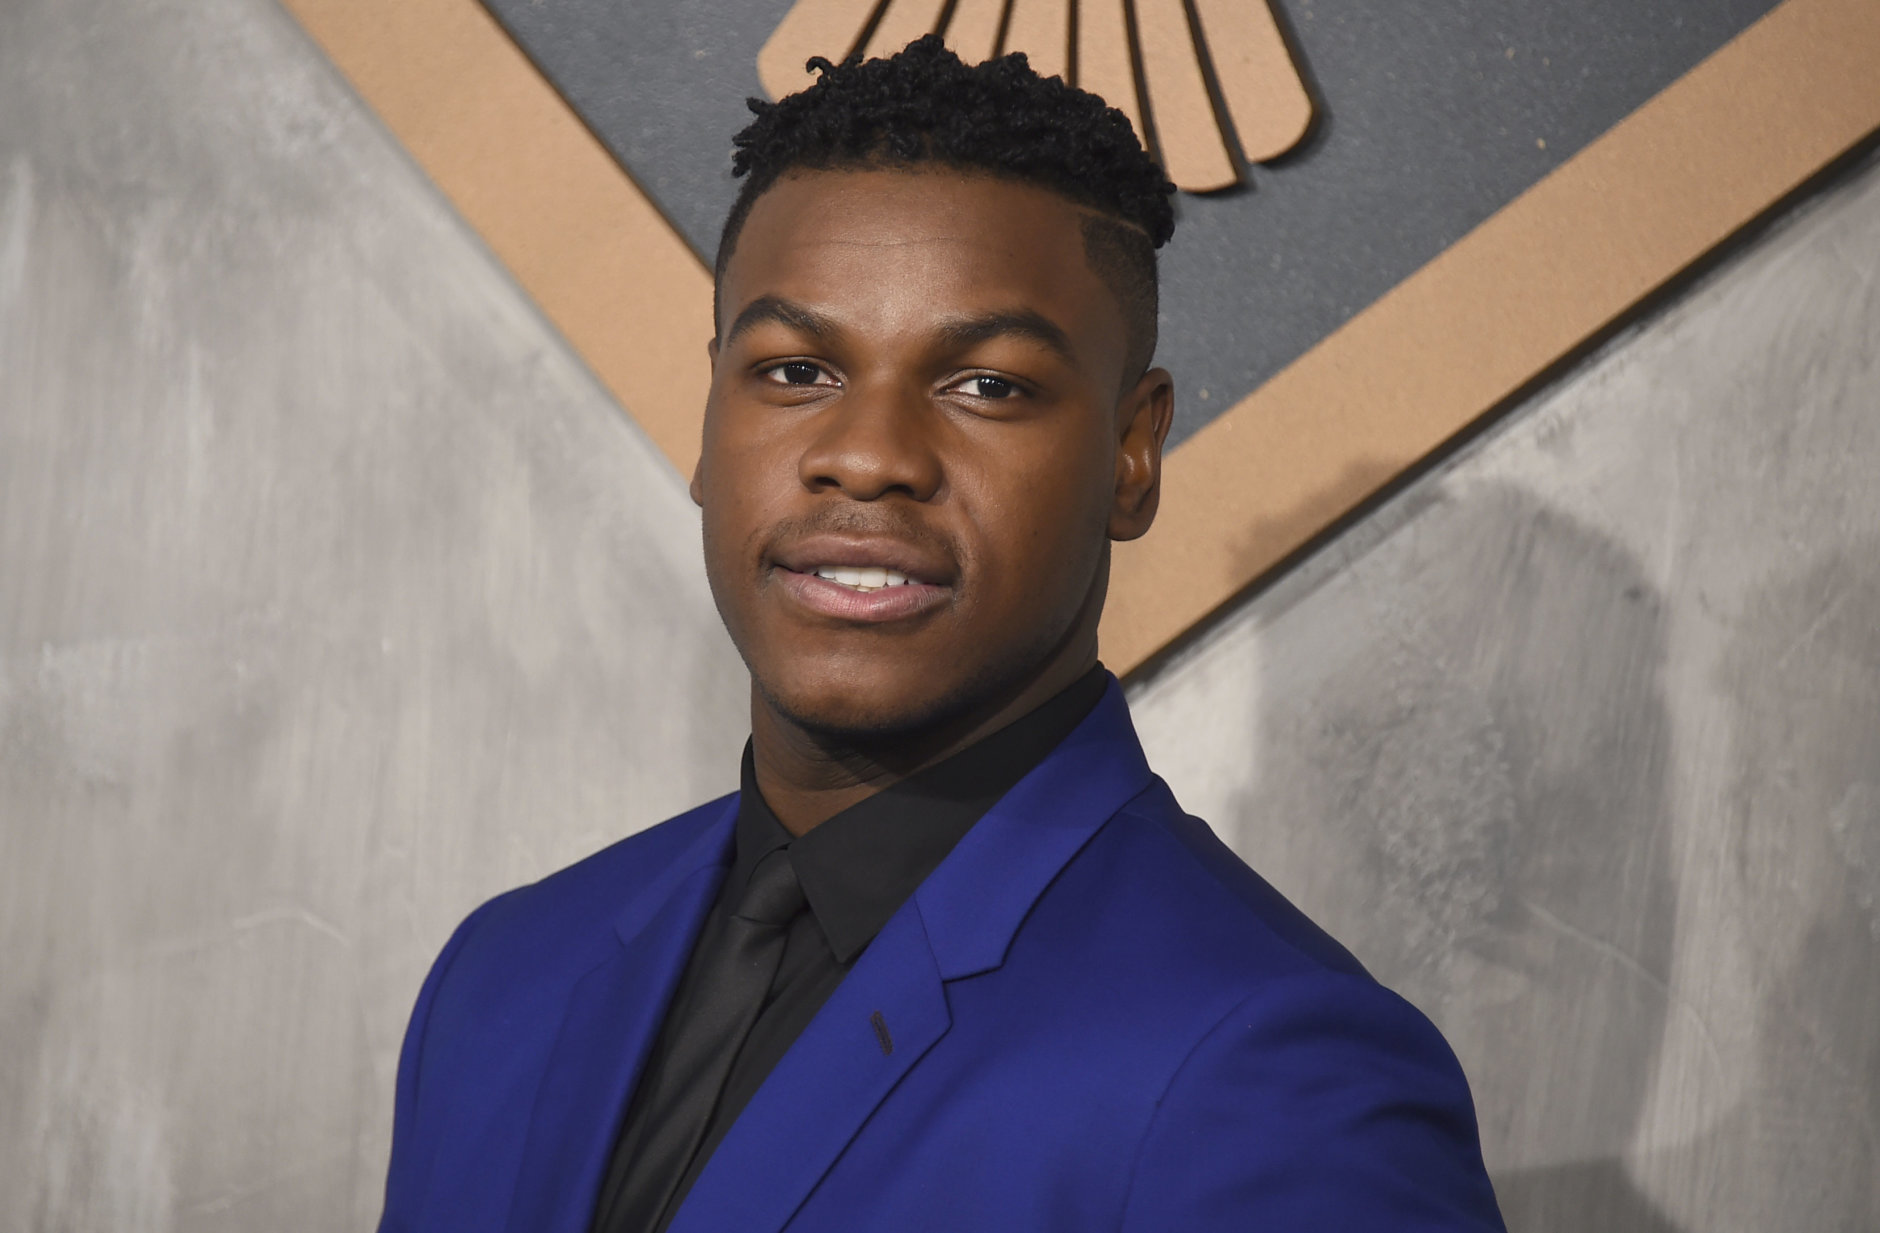 """John Boyega arrives at the global premiere of """"Pacific Rim Uprising"""" at the TCL Chinese Theatre on Wednesday, March 21, 2018, in Los Angeles. (Photo by Jordan Strauss/Invision/AP)"""